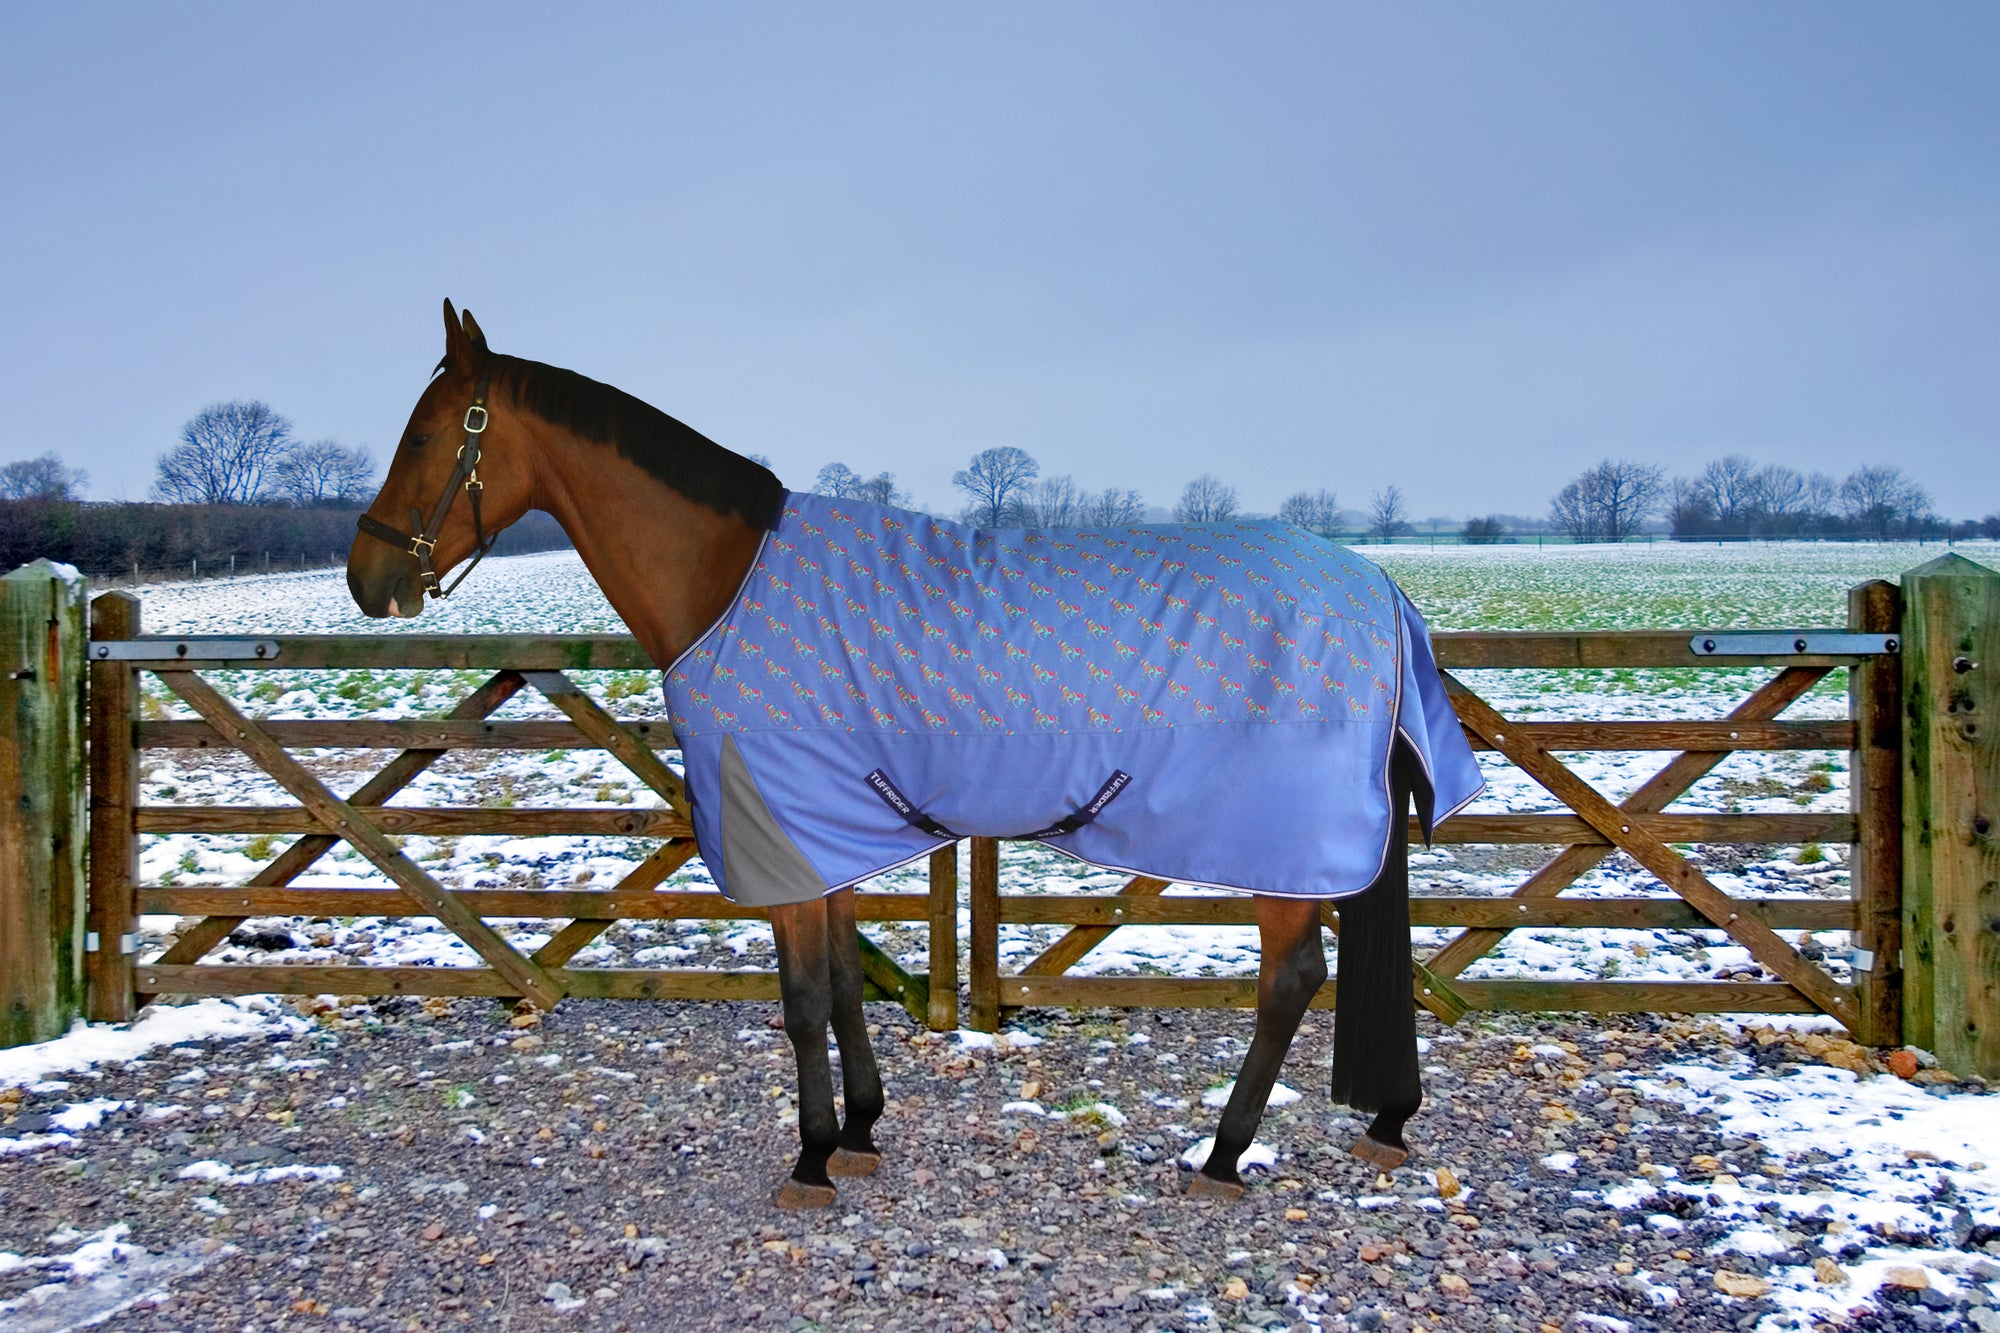 1200D Ripstop Turnout Blanket with 220gms Medium Weight - Adorable Horse Print - TuffRider - Breeches.com